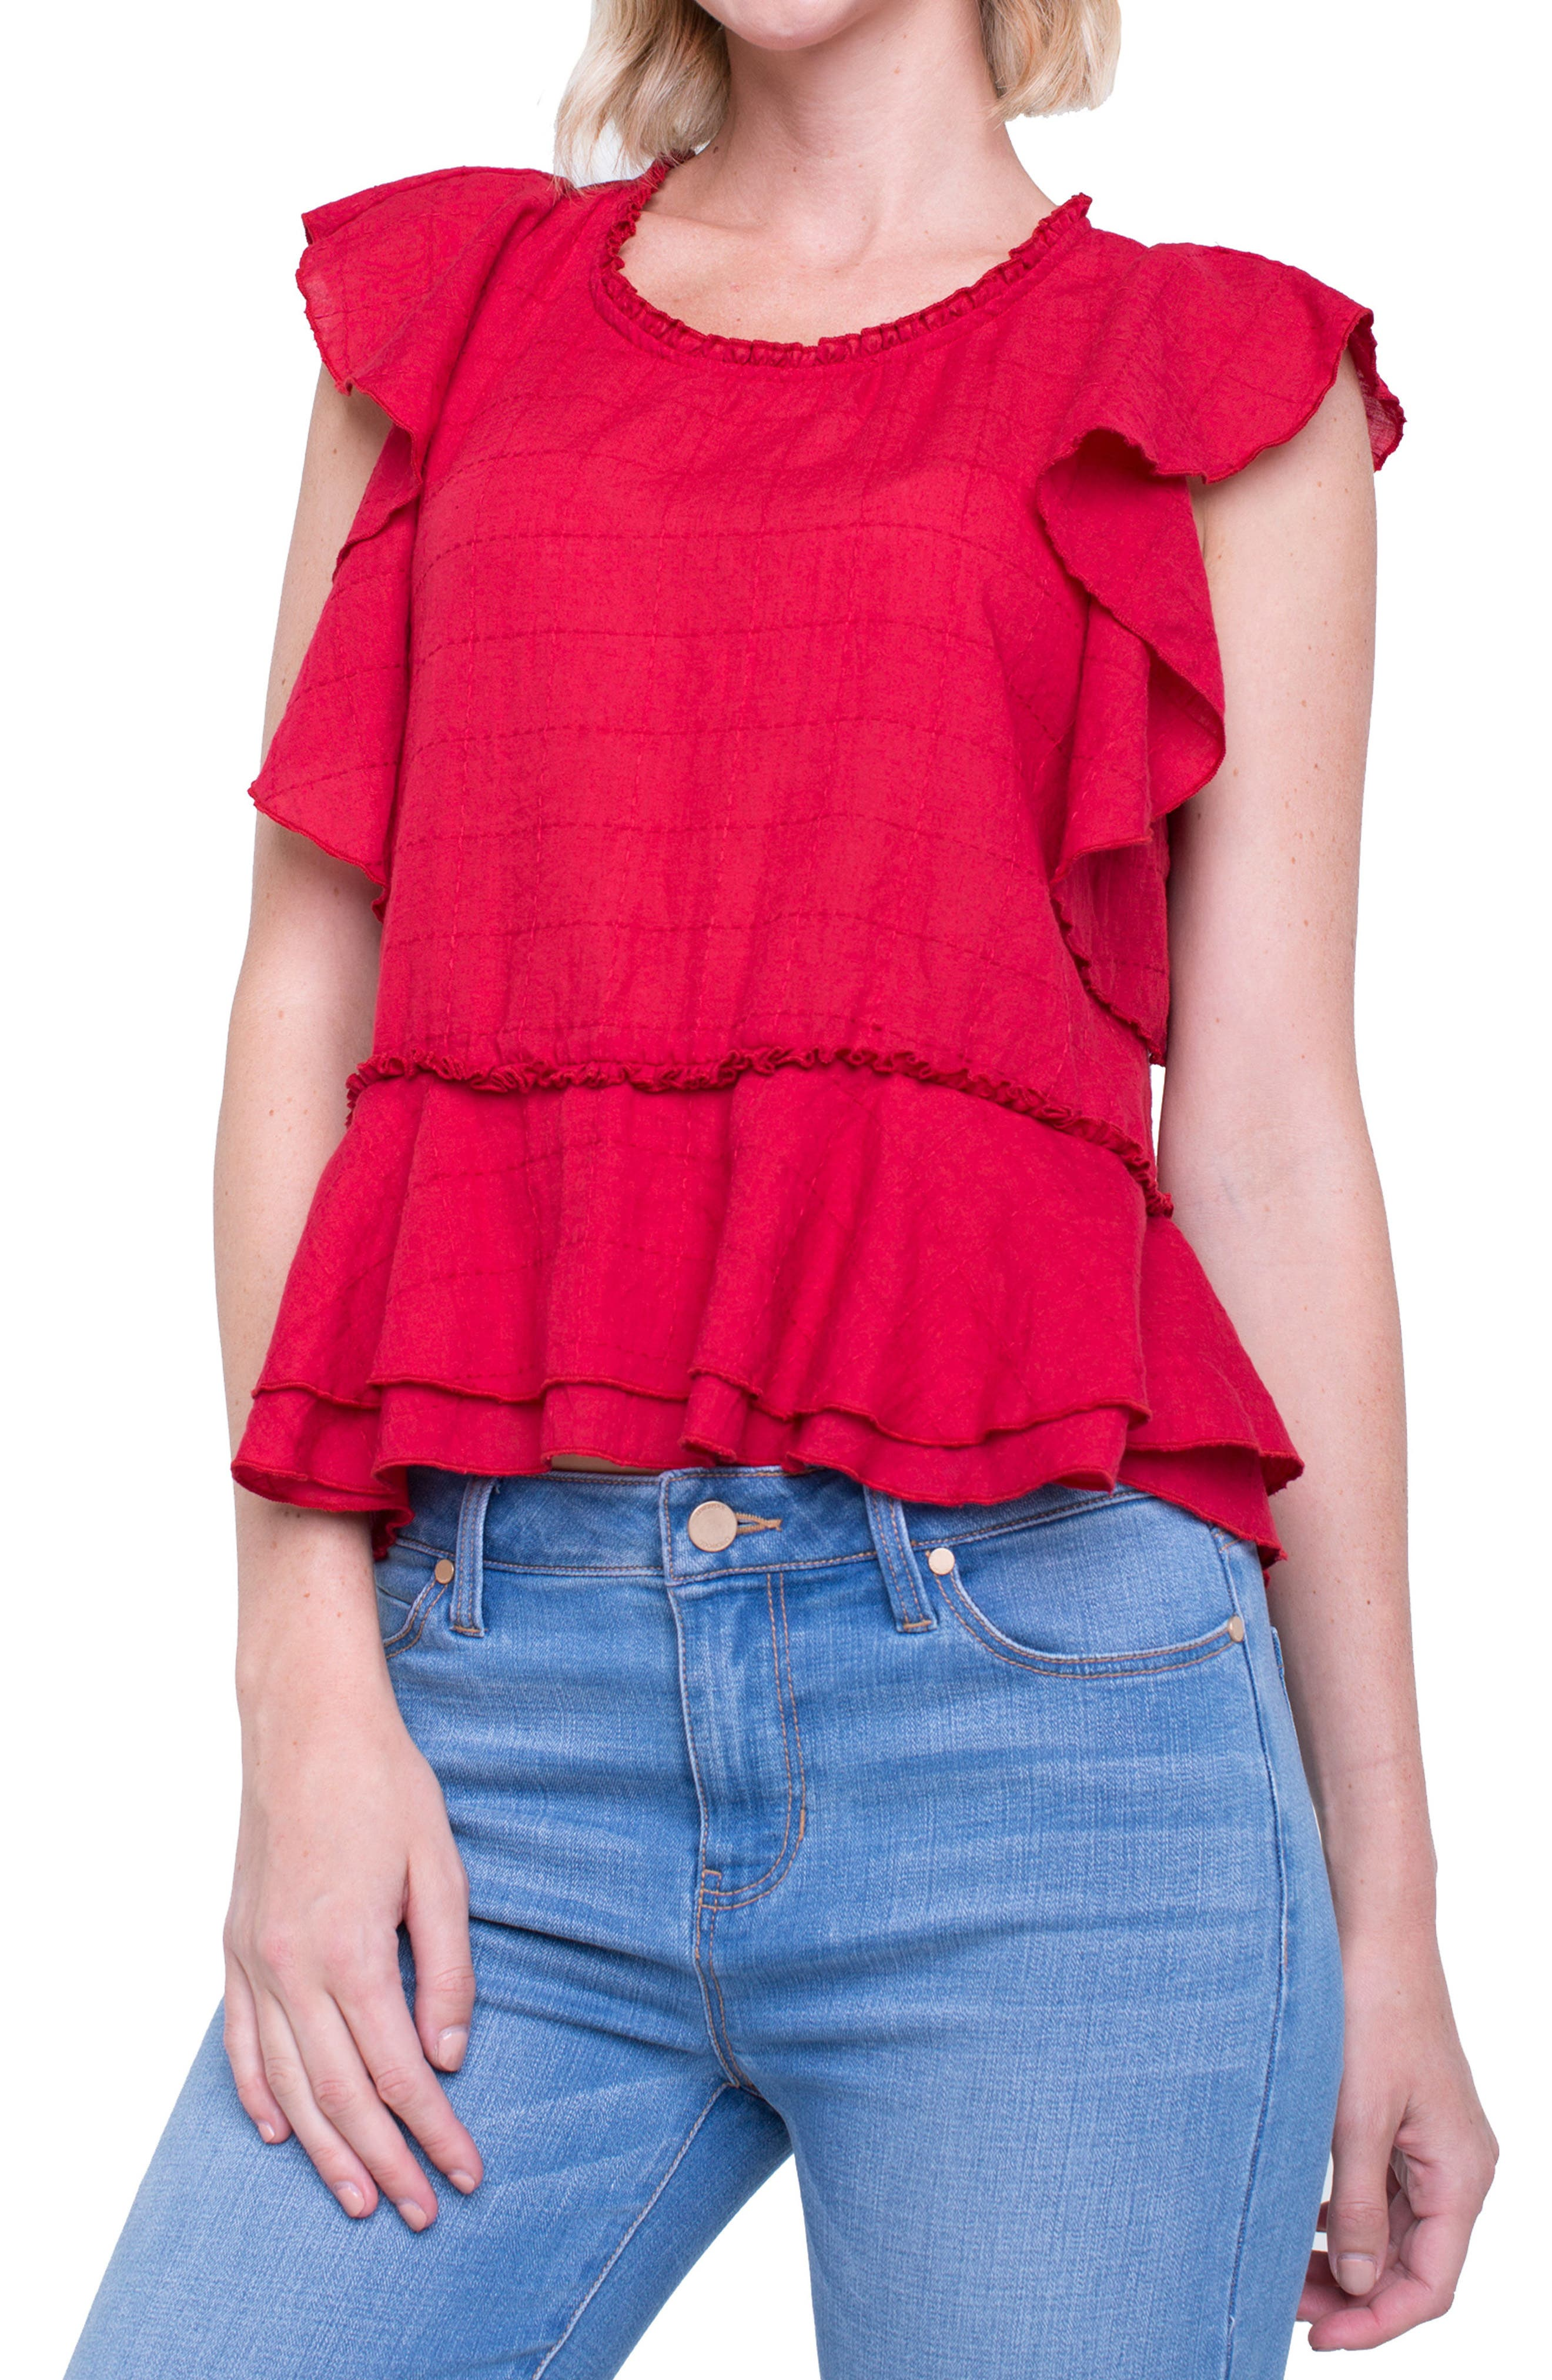 Liverpool Jeans Company Ruffle Cotton Blend Top